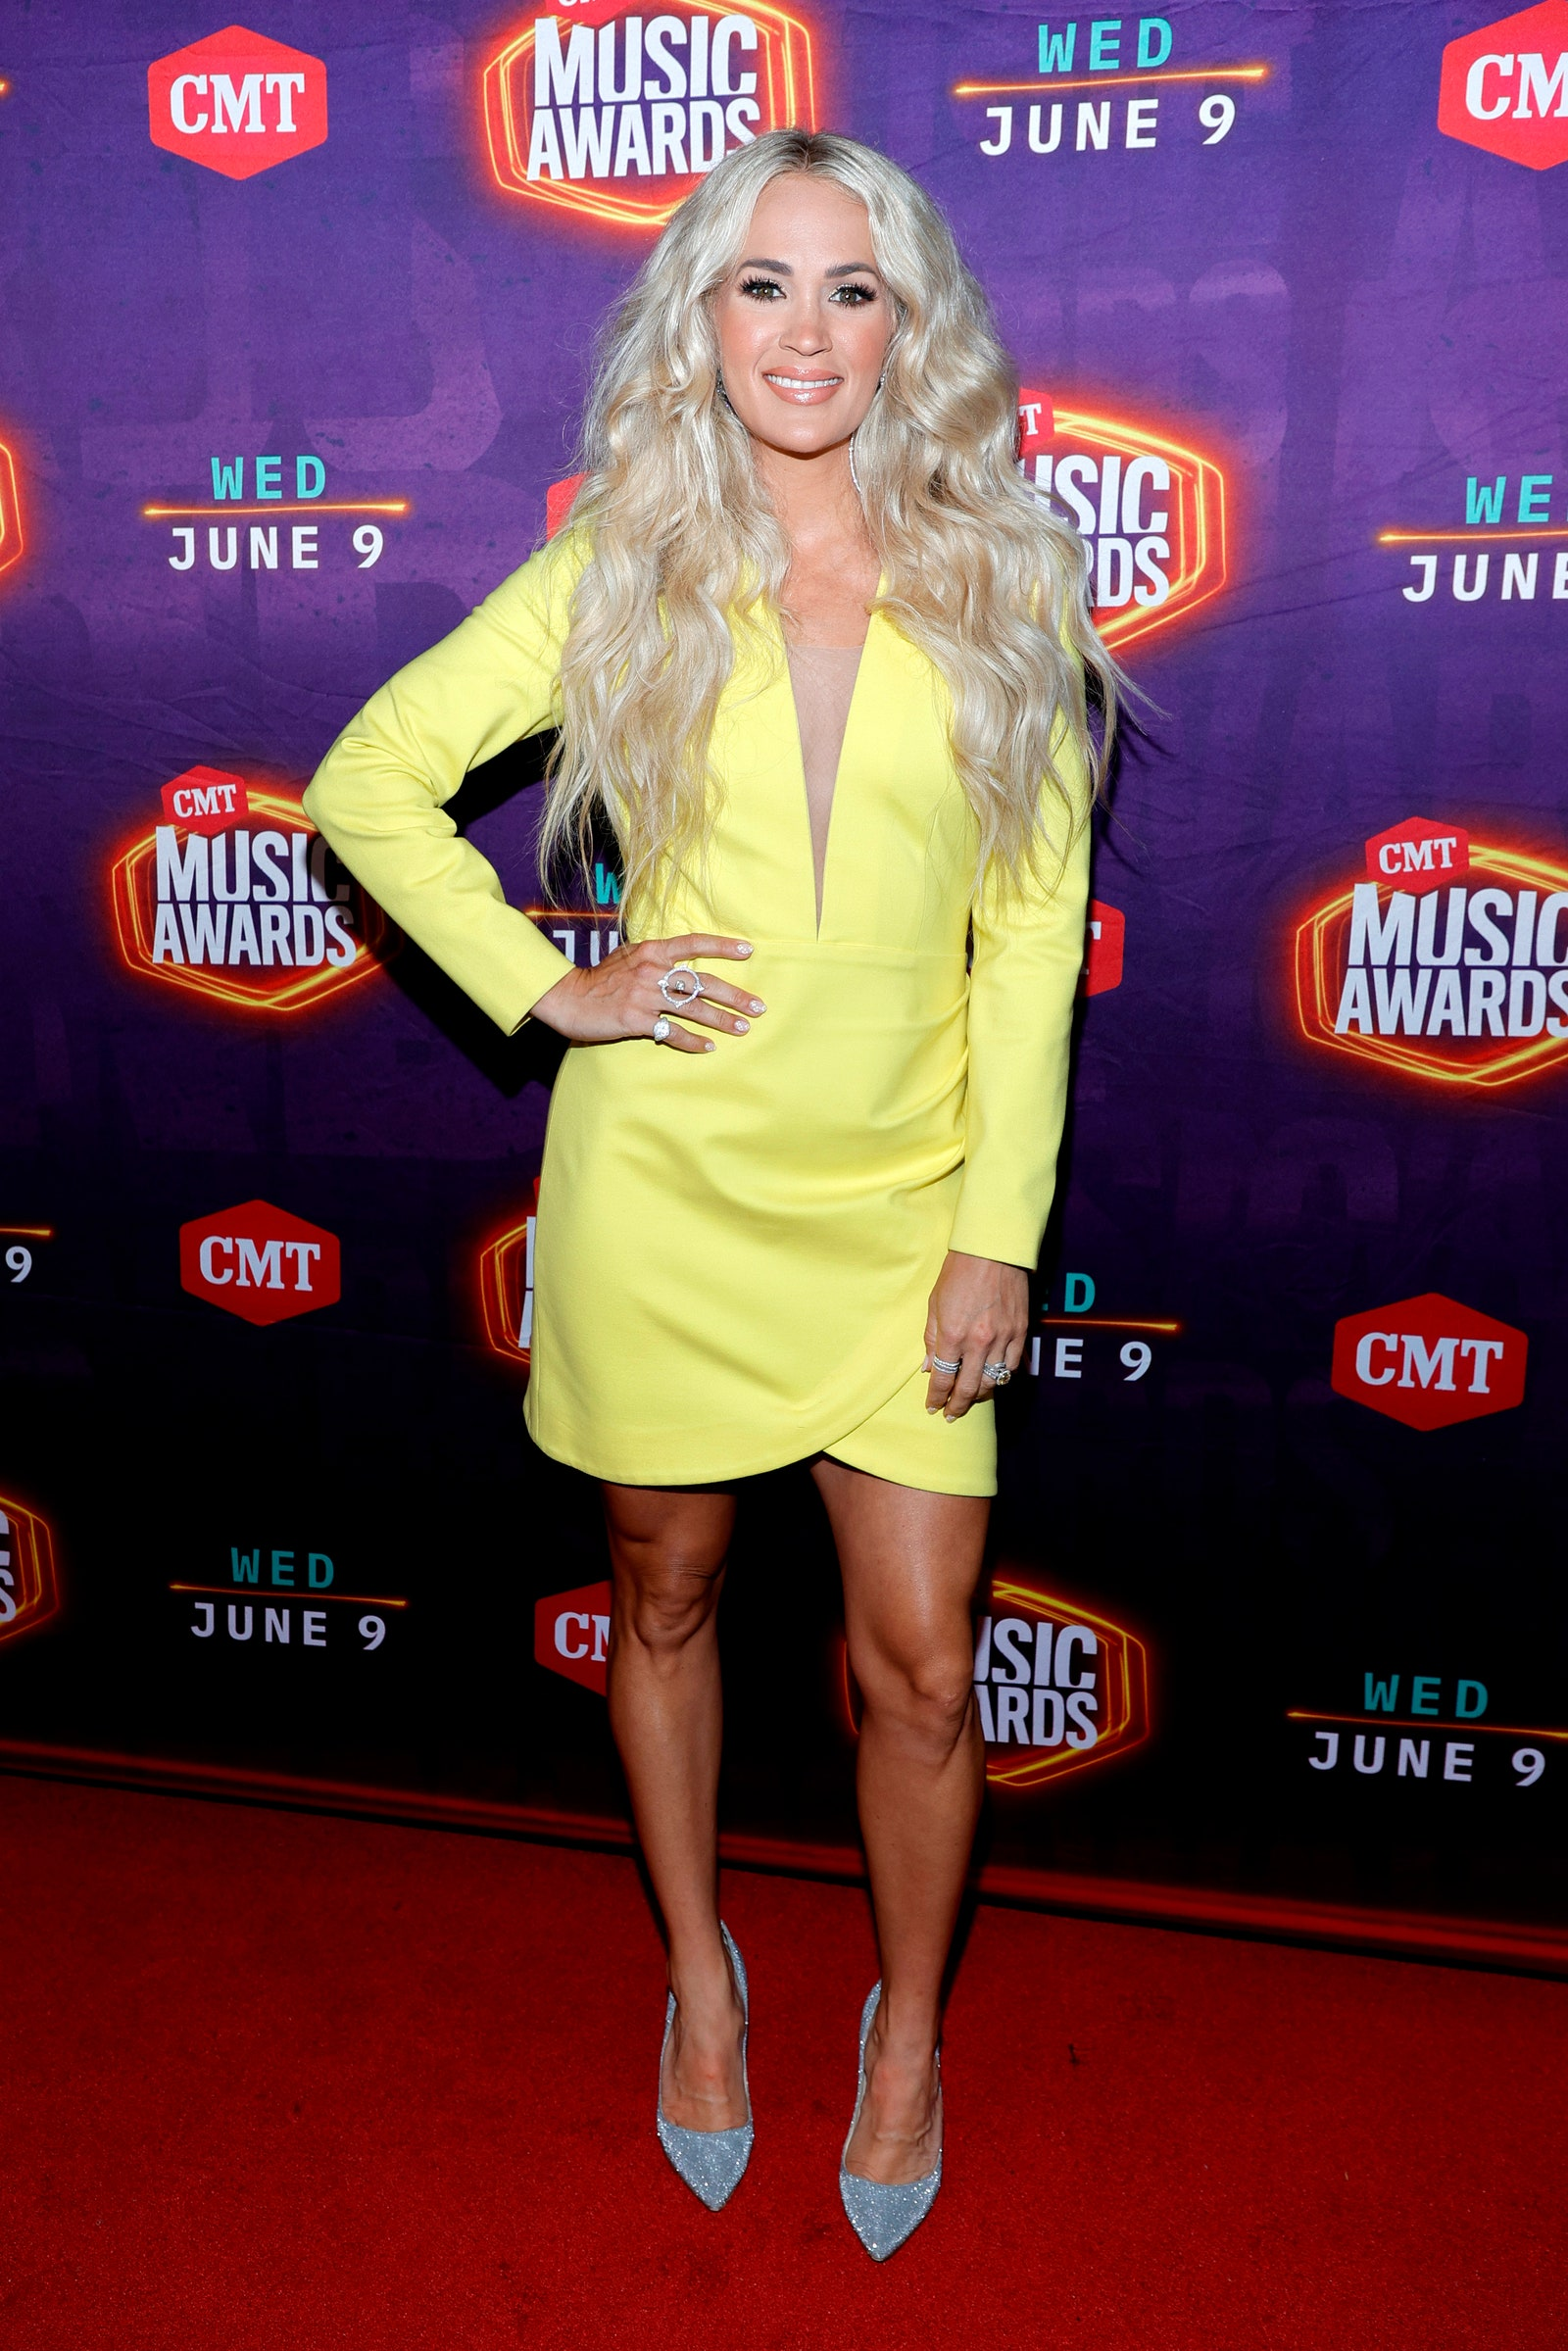 Image may contain Human Person Fashion Carrie Underwood and Premiere